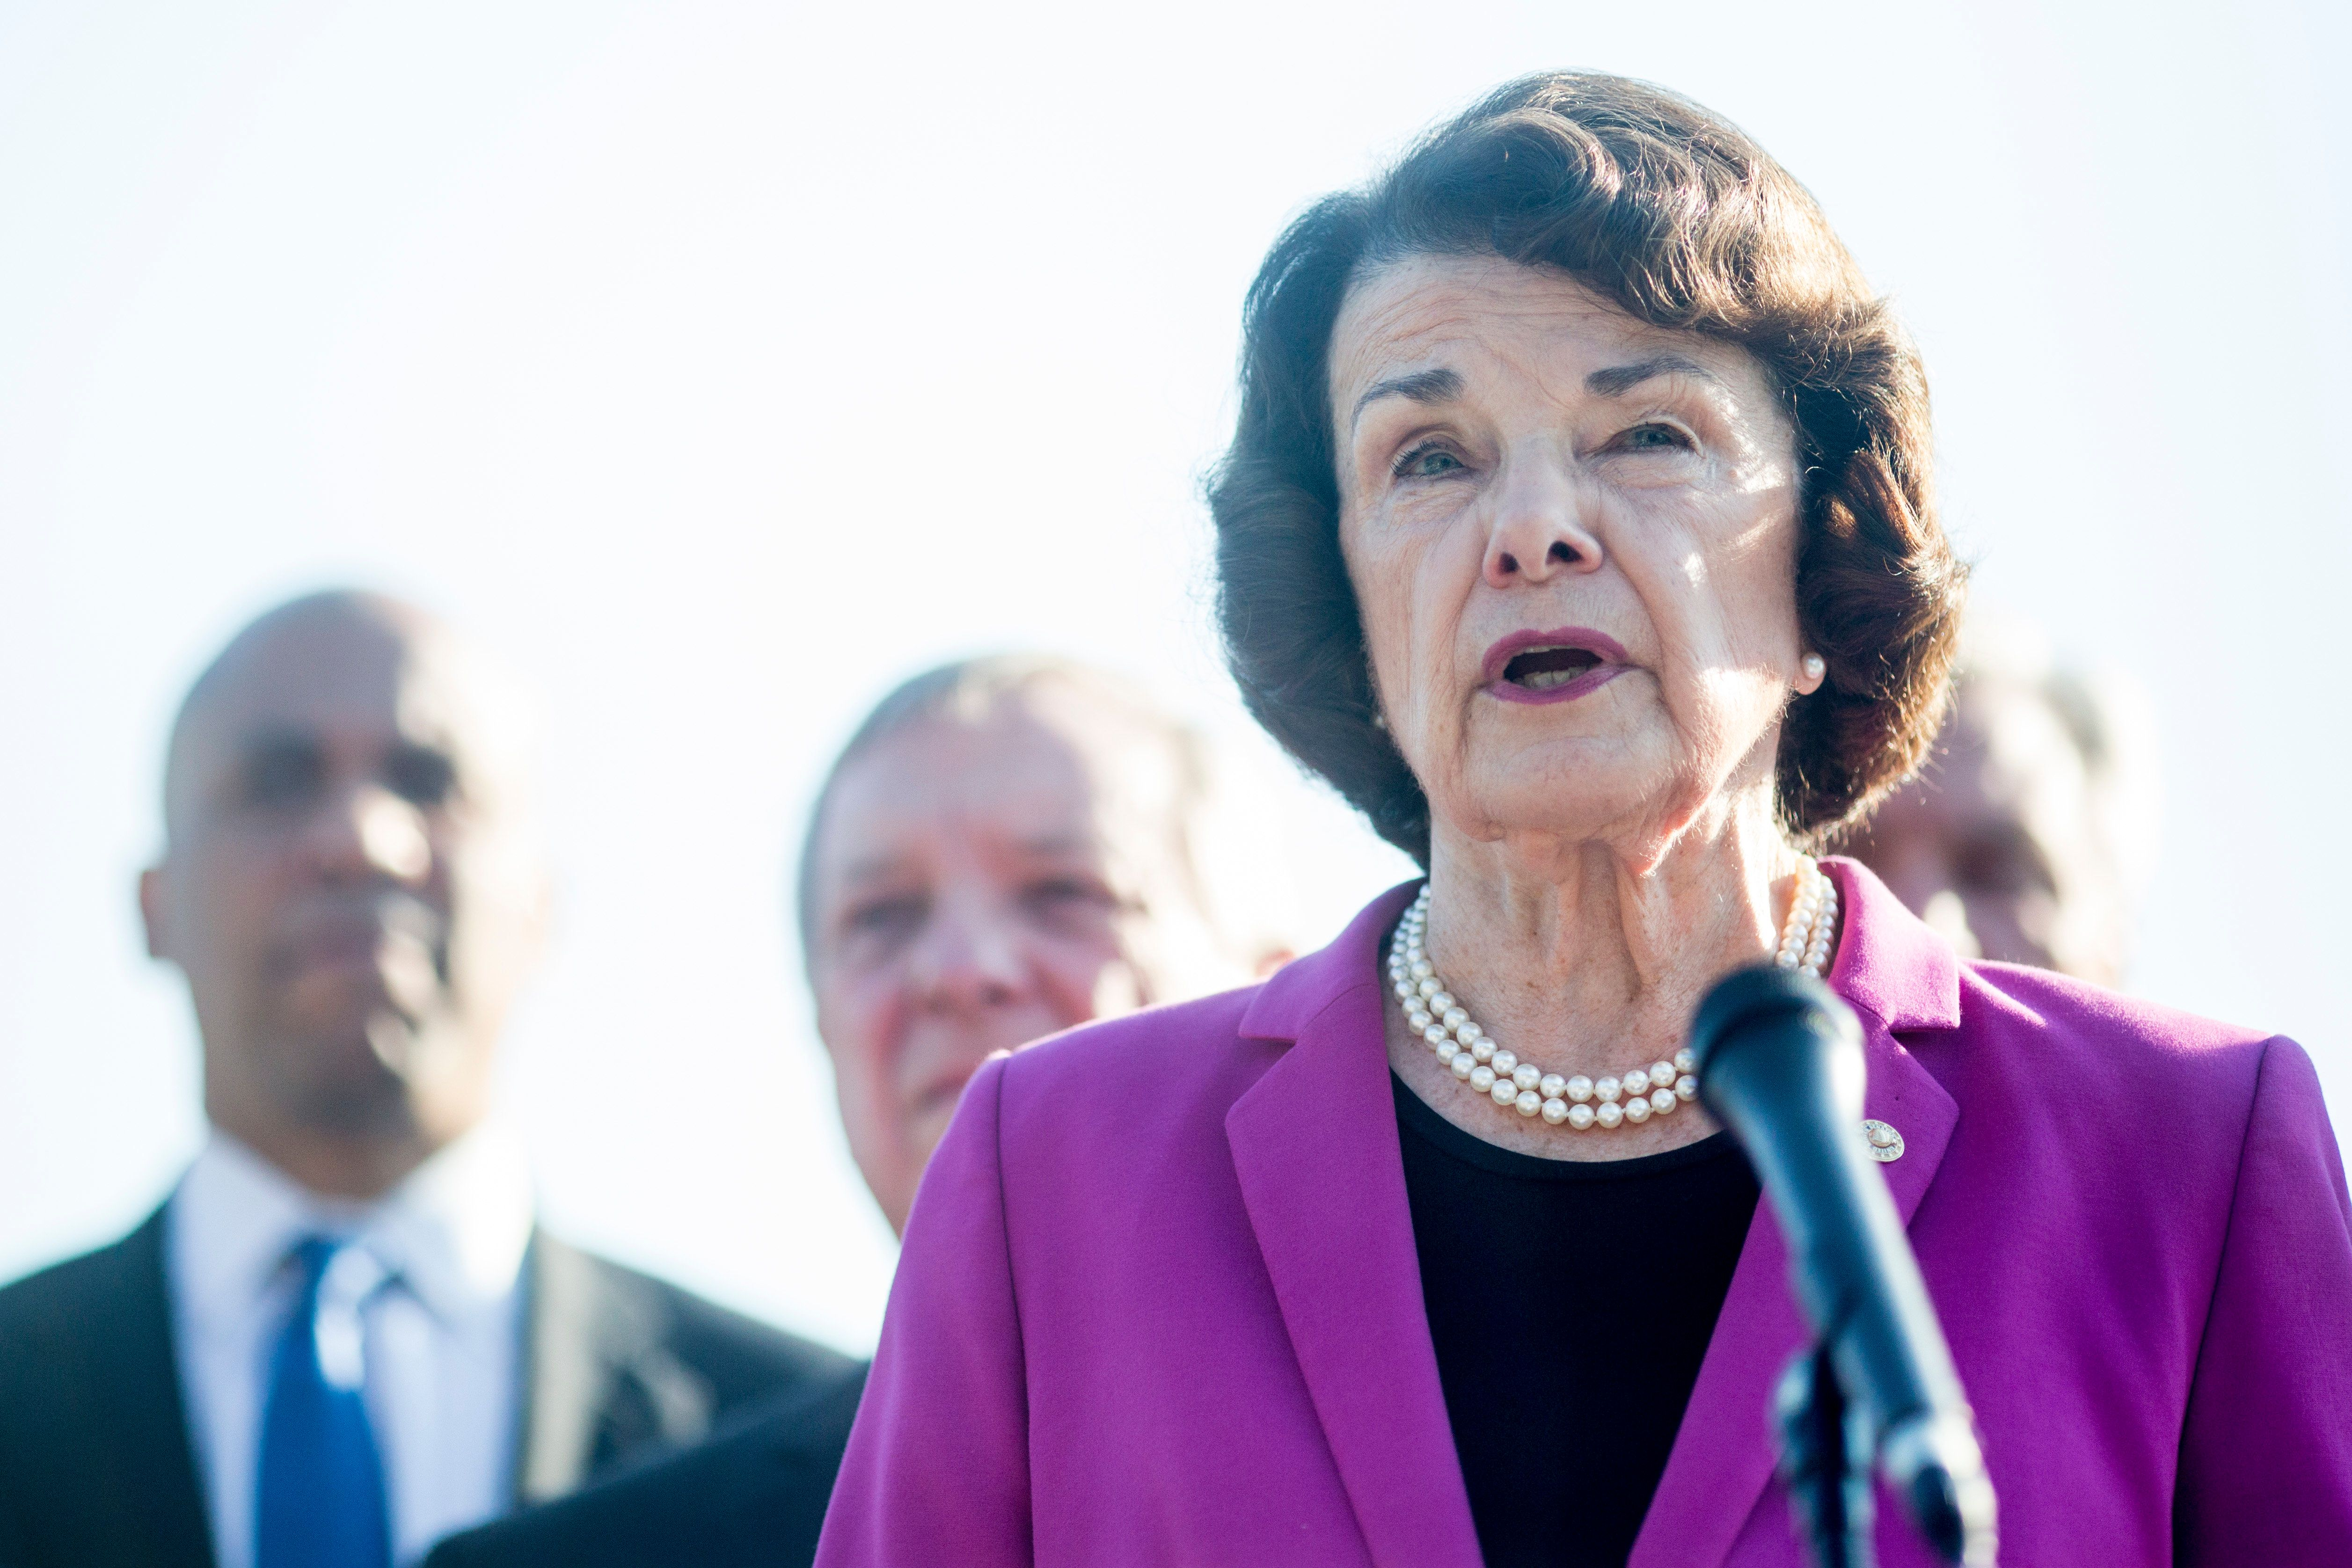 WASHINGTON, DC - SEPTEMBER 04: Senate Judiciary Committee Ranking Member Senator Dianne Feinstein (D-CA) speaks during a news conference denouncing the White House's withholding of documents on Supreme Court Nominee Brett Kavanaugh outside of the U.S. Supreme Court on September 4, 2018 in Washington, DC.   (Photo by Zach Gibson/Getty Images)